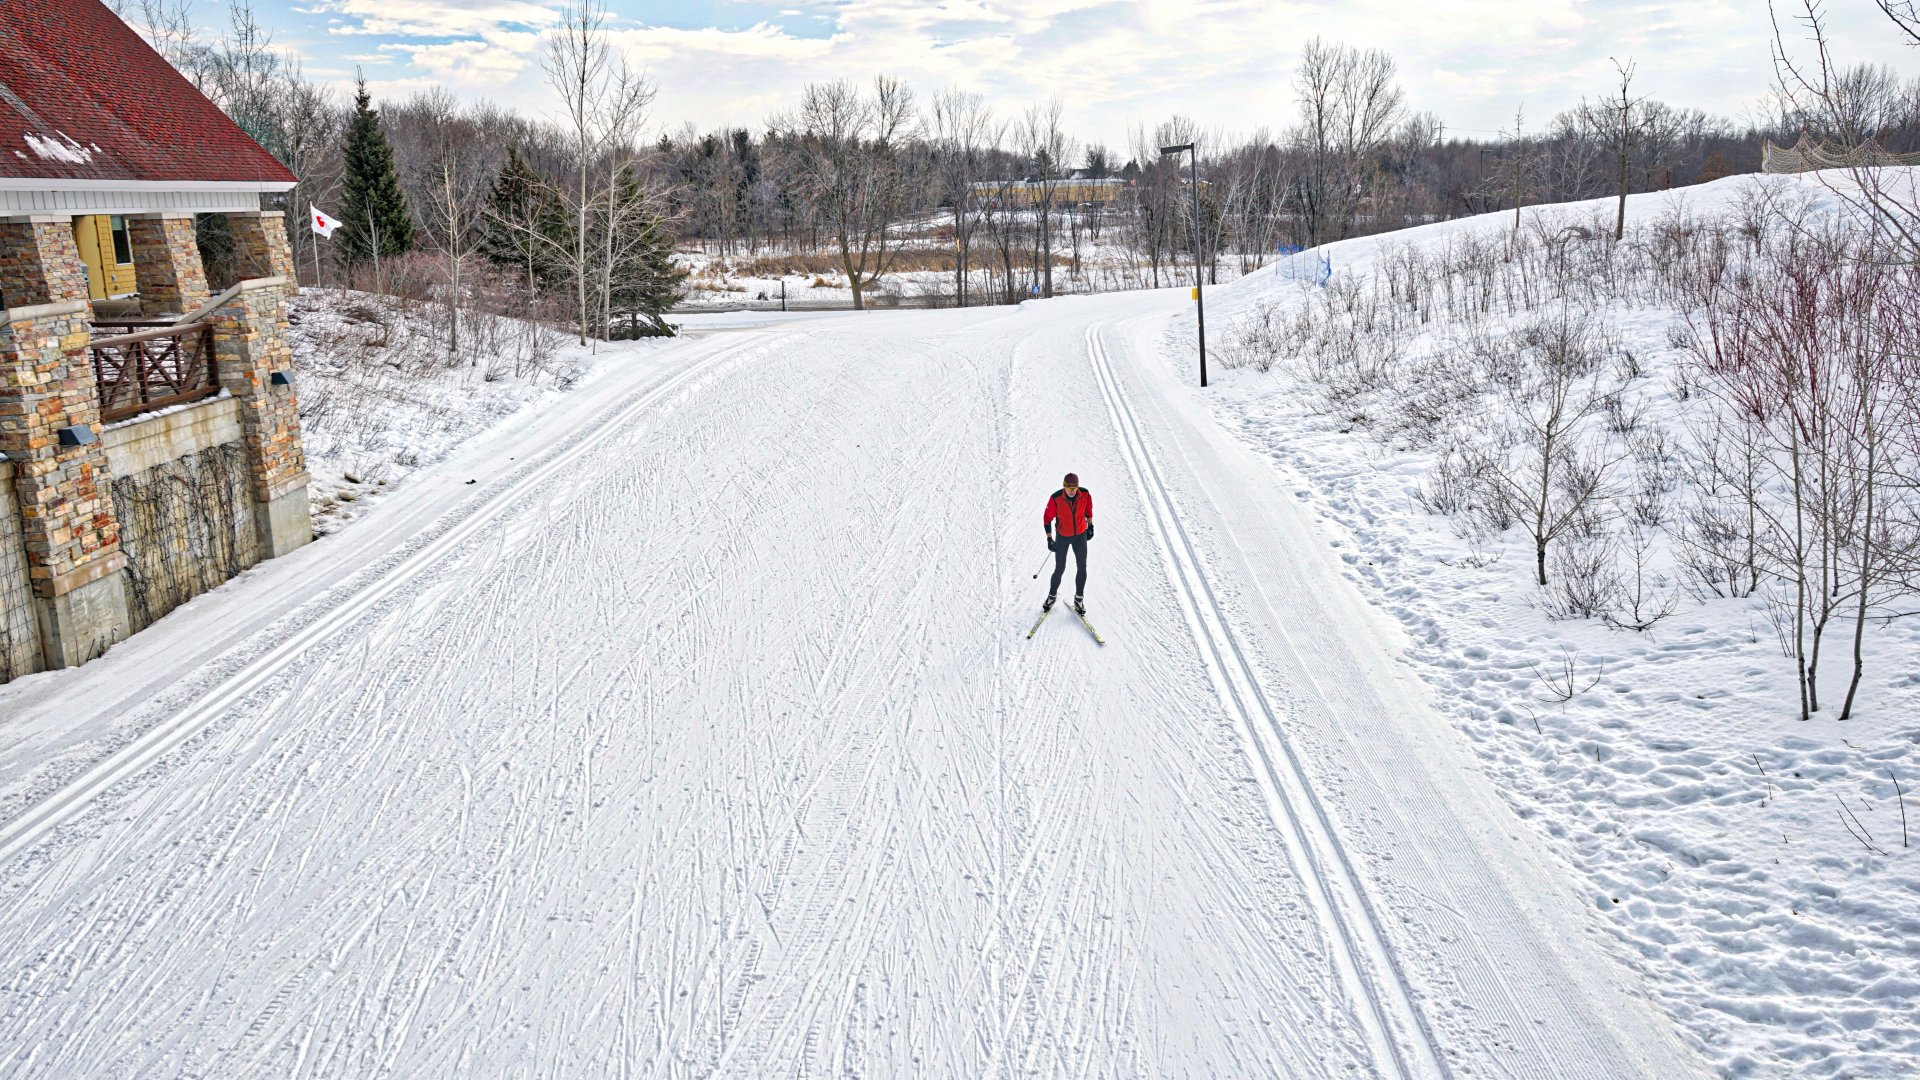 Elm Creek Park Reserve features more than 70 miles of groomed Nordic ski trails and exciting winter sports like snow tubing, skiing and fat biking. Plan your trip now!